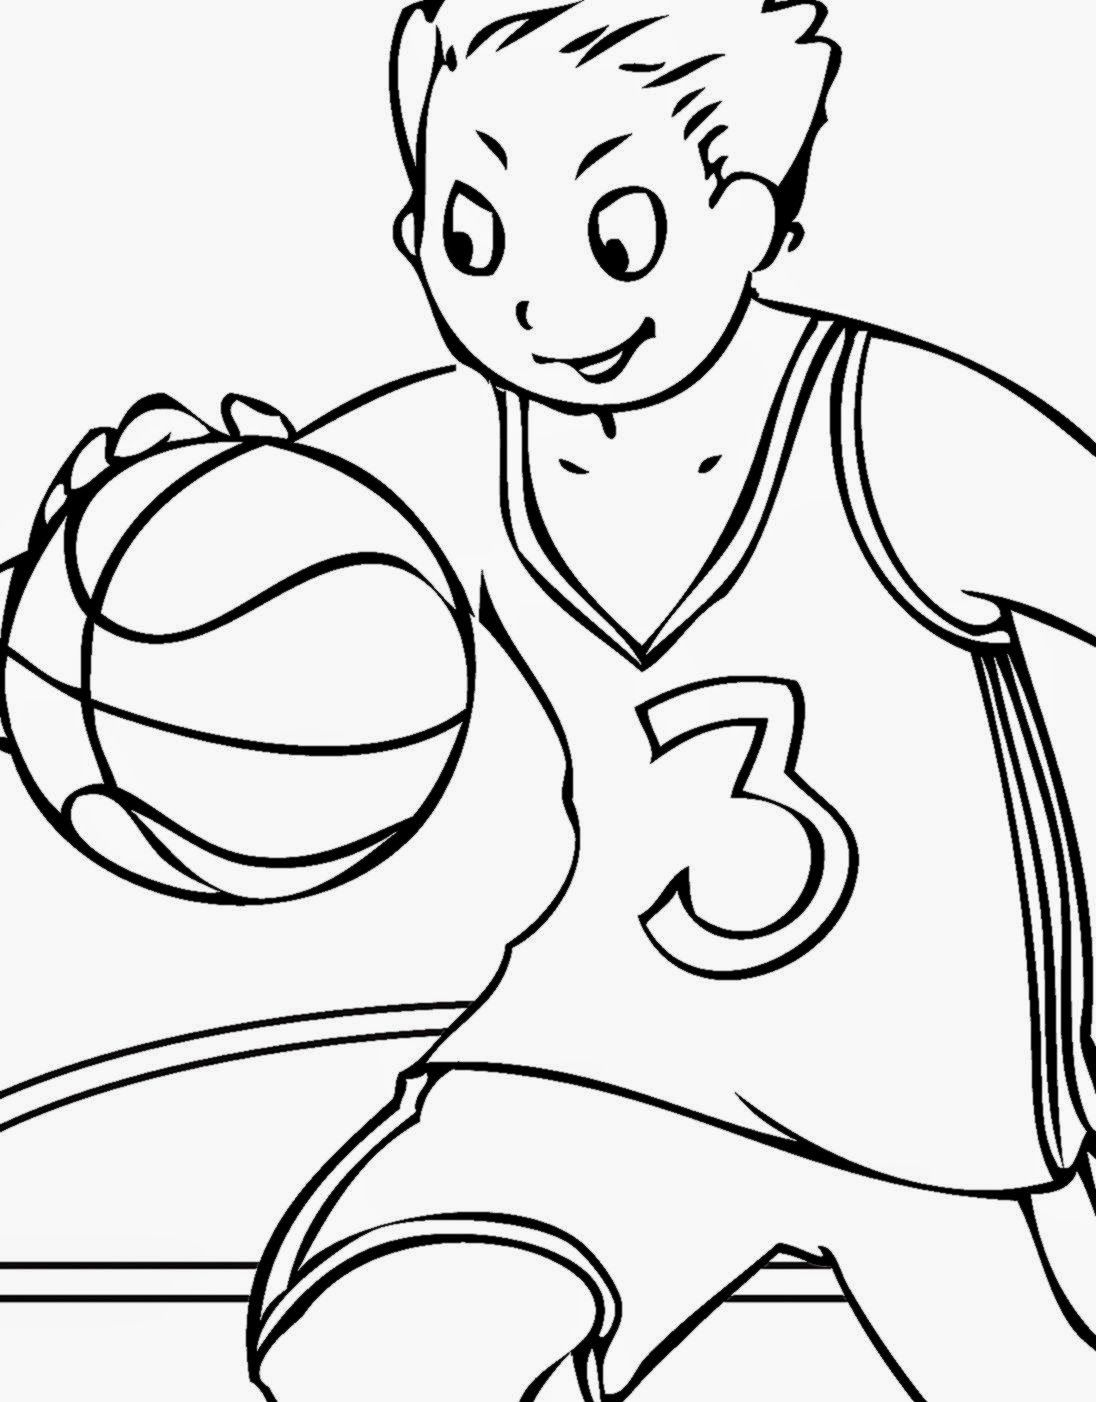 Basketball coloring pages printable coloring home for Basketball coloring page